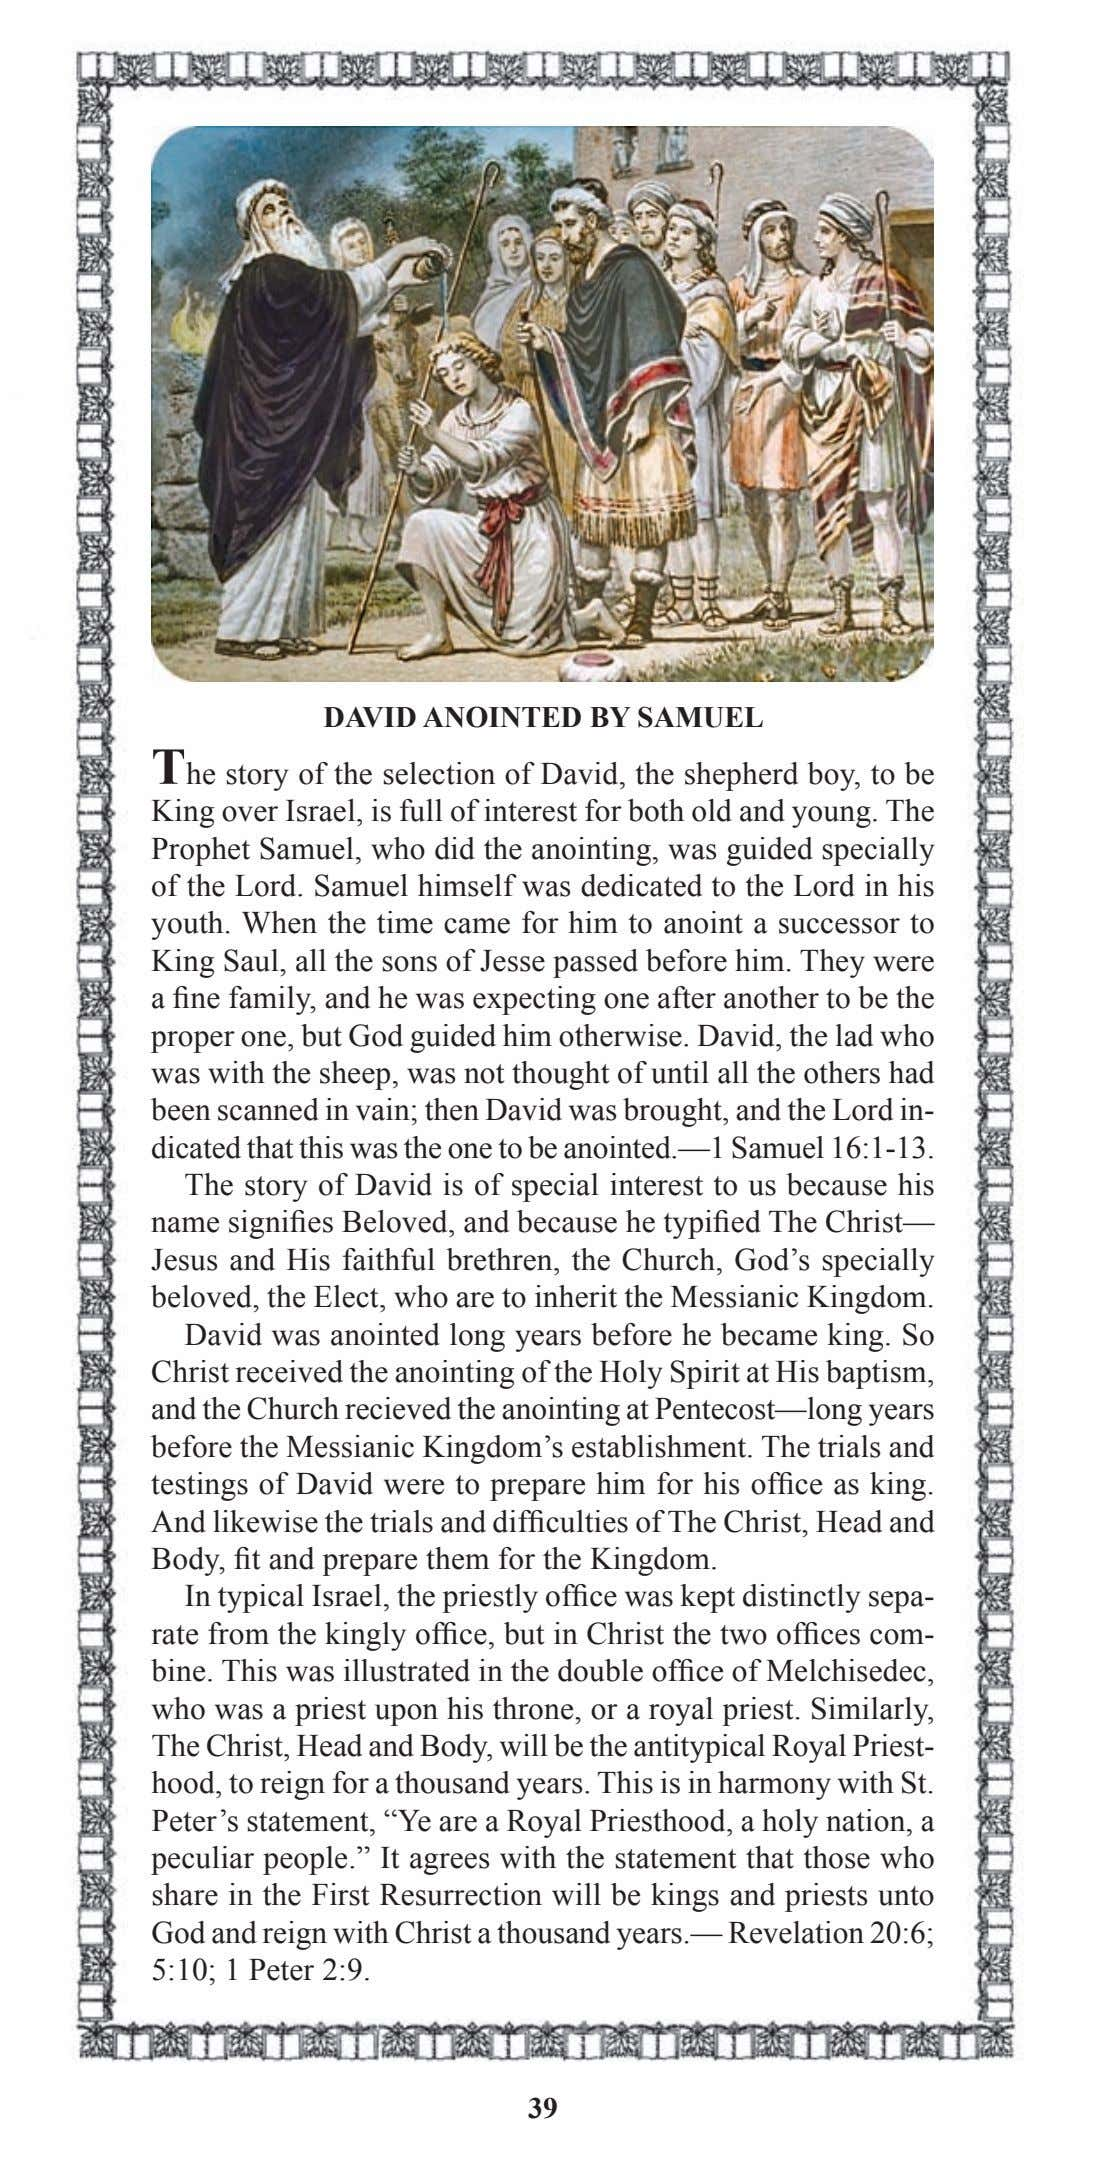 DAVID ANOINTED BY SAMUEL The story of the selection of David, the shepherd boy, to